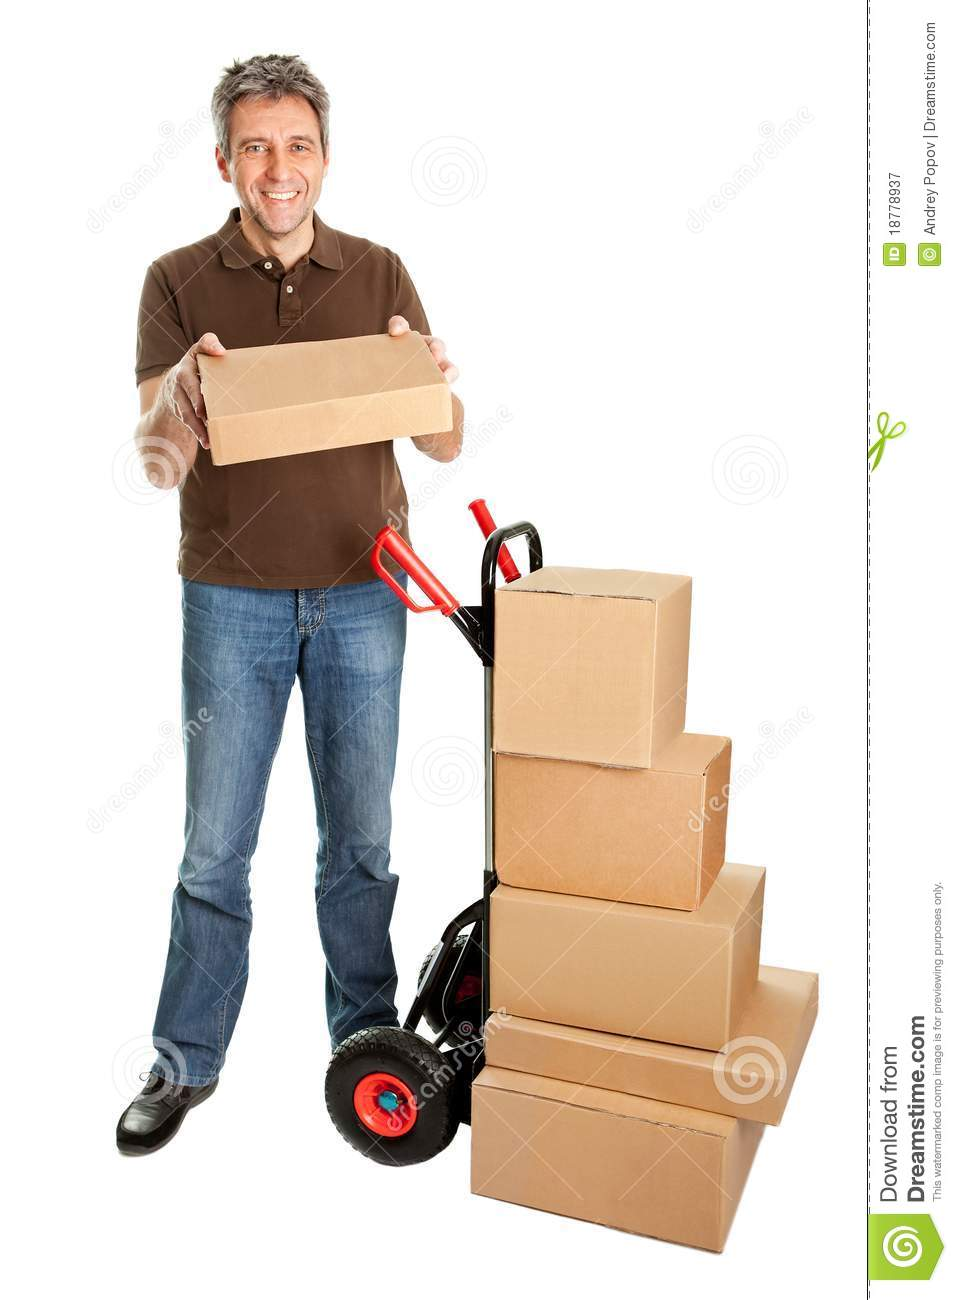 Delivery Man Holding The Package Royalty Free Stock